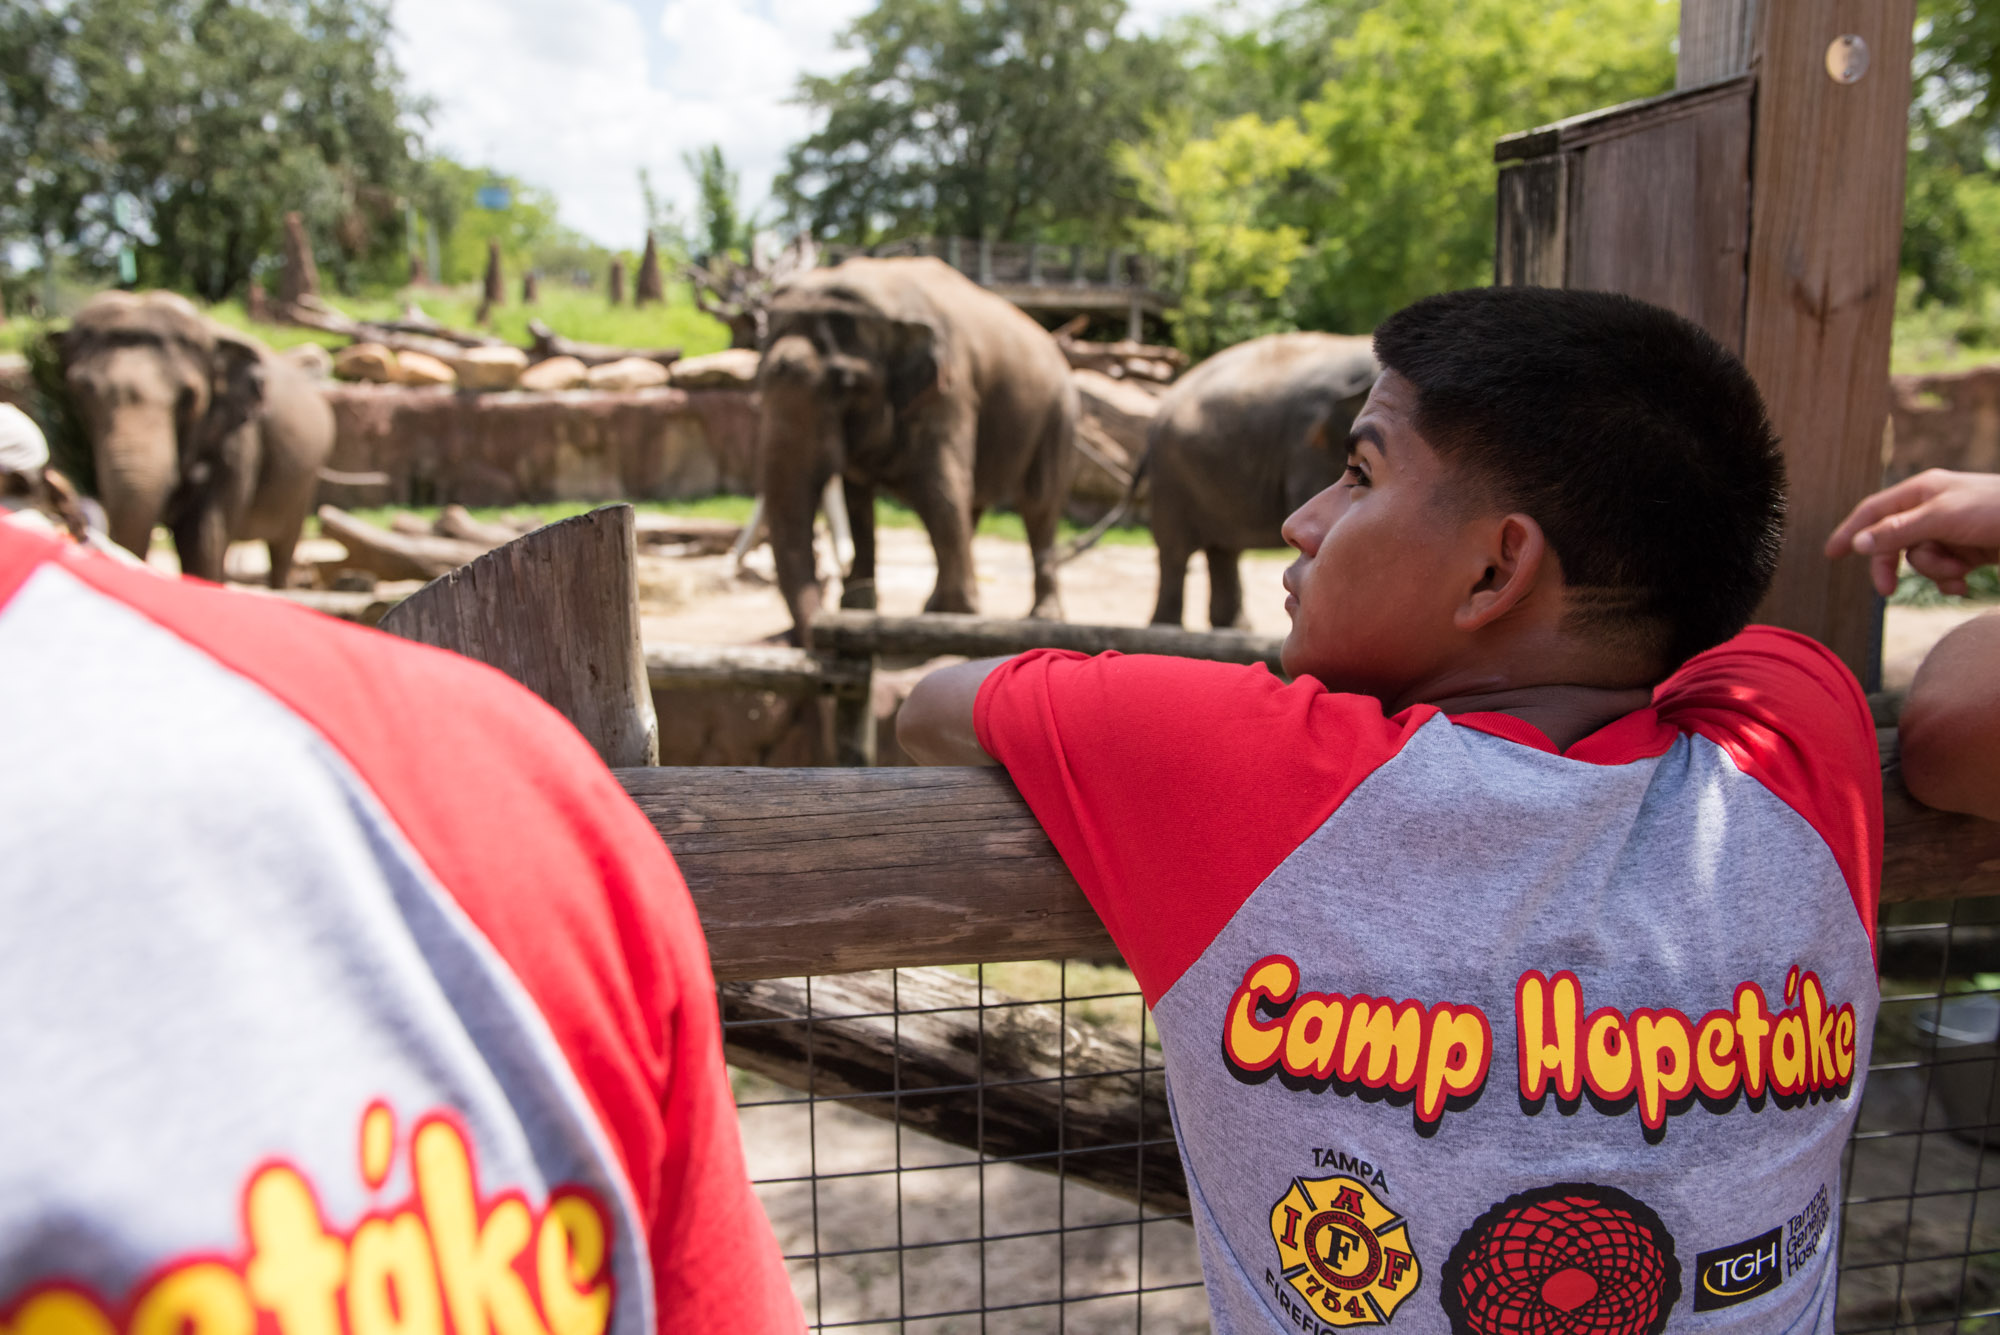 Group of boys looking at the elephants at Busch Gardens with Camp Hopetake